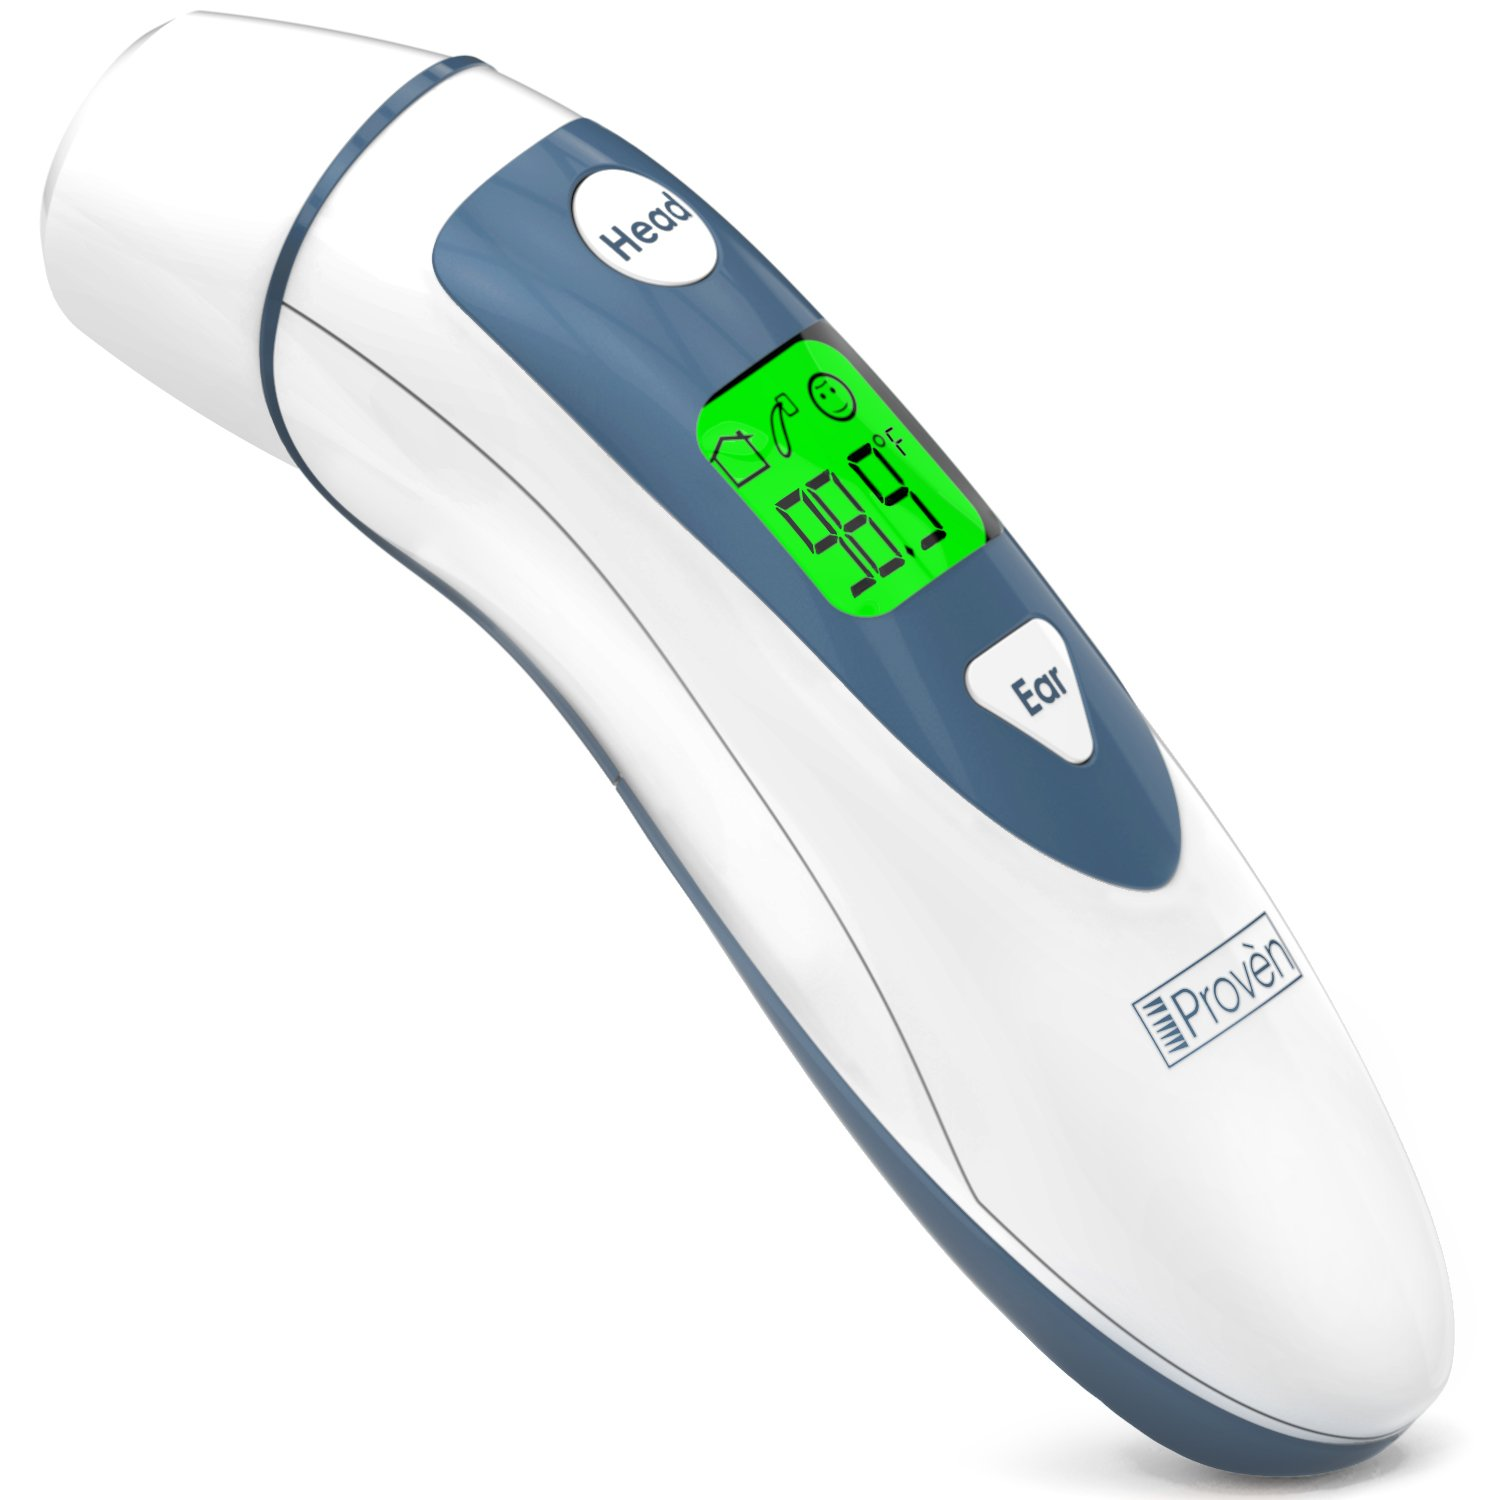 Medical Digital Ear Thermometer with Temporal Forehead Function For Baby, Infant and Kids - Upgraded Tympanic Fever Scan Lens Technology for Better Accuracy - New 2018 - Thermometers iProven DMT-489WG